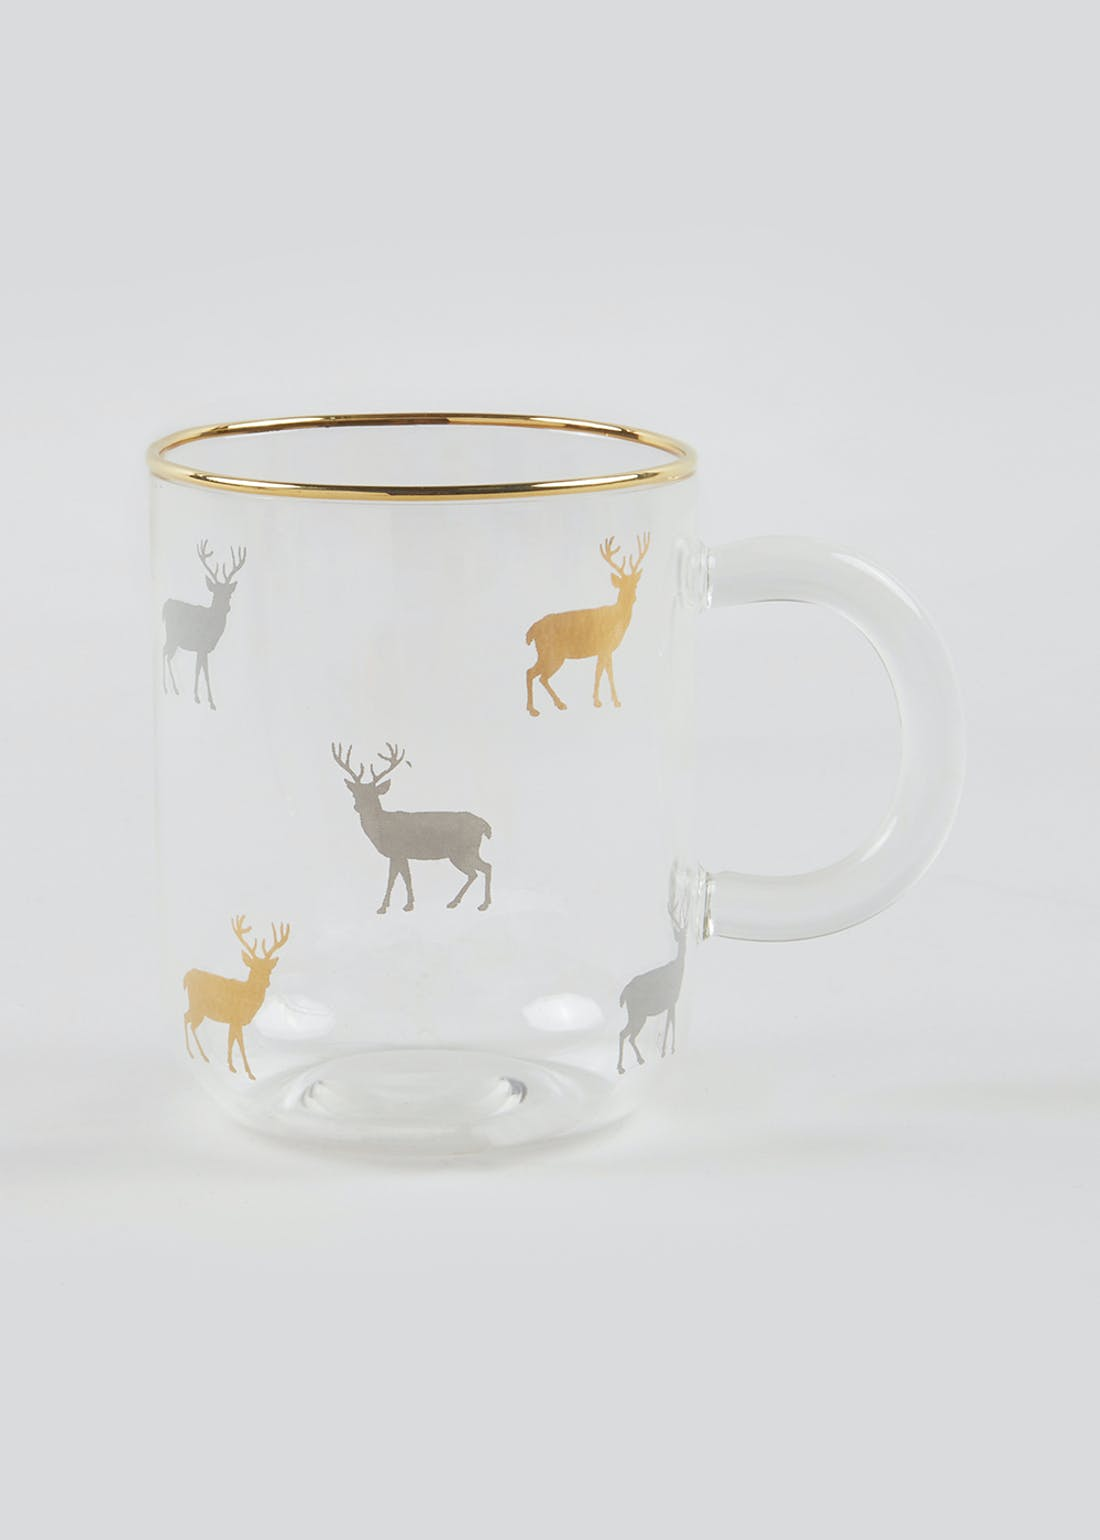 Christmas Frosted Stag Mulled Wine Glass Mug (13cm x 10cm x 8cm)